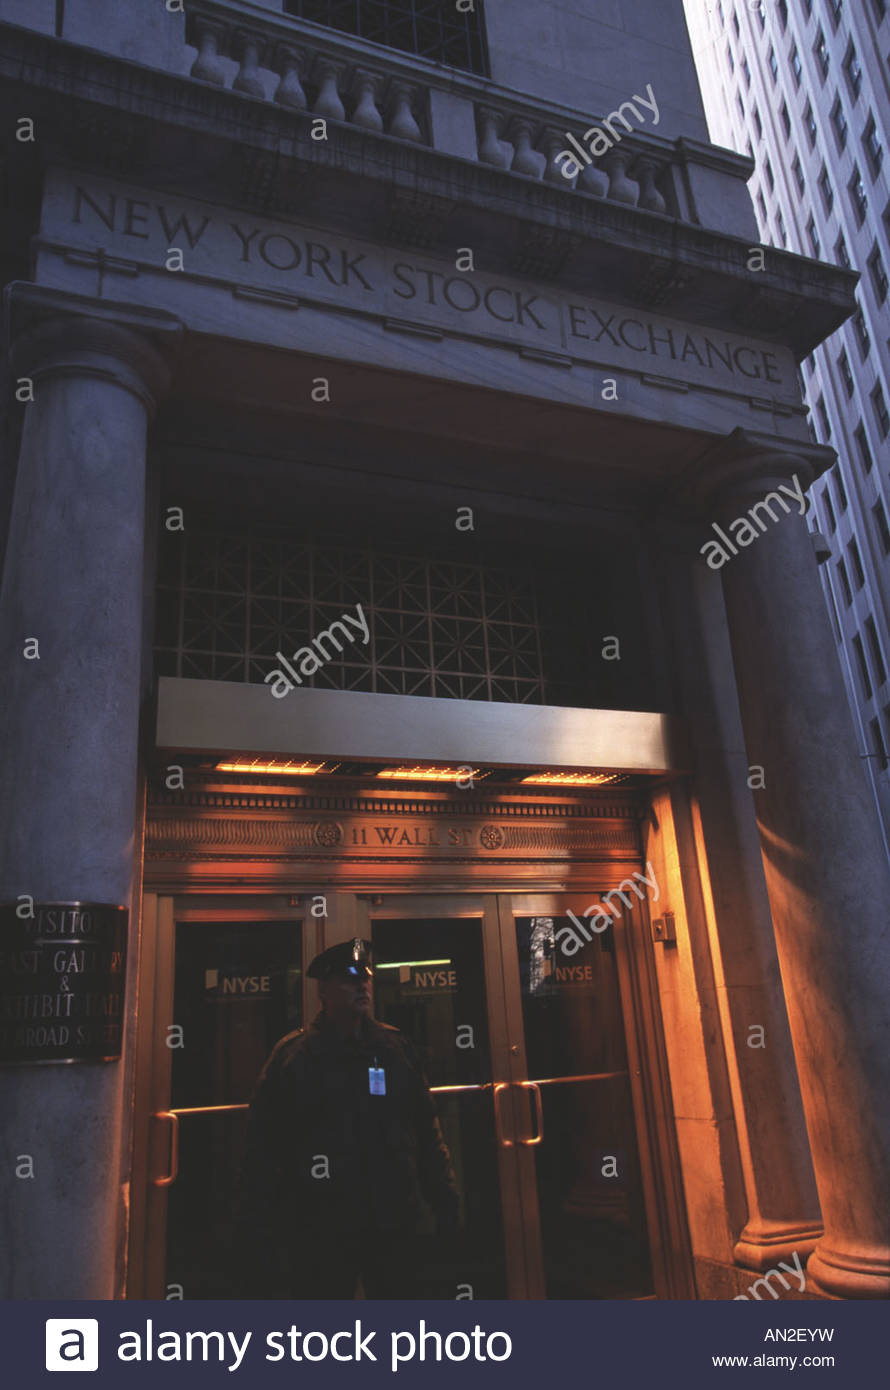 New York State, New York City, Wall Street and the Stock Exchange - Stock Image